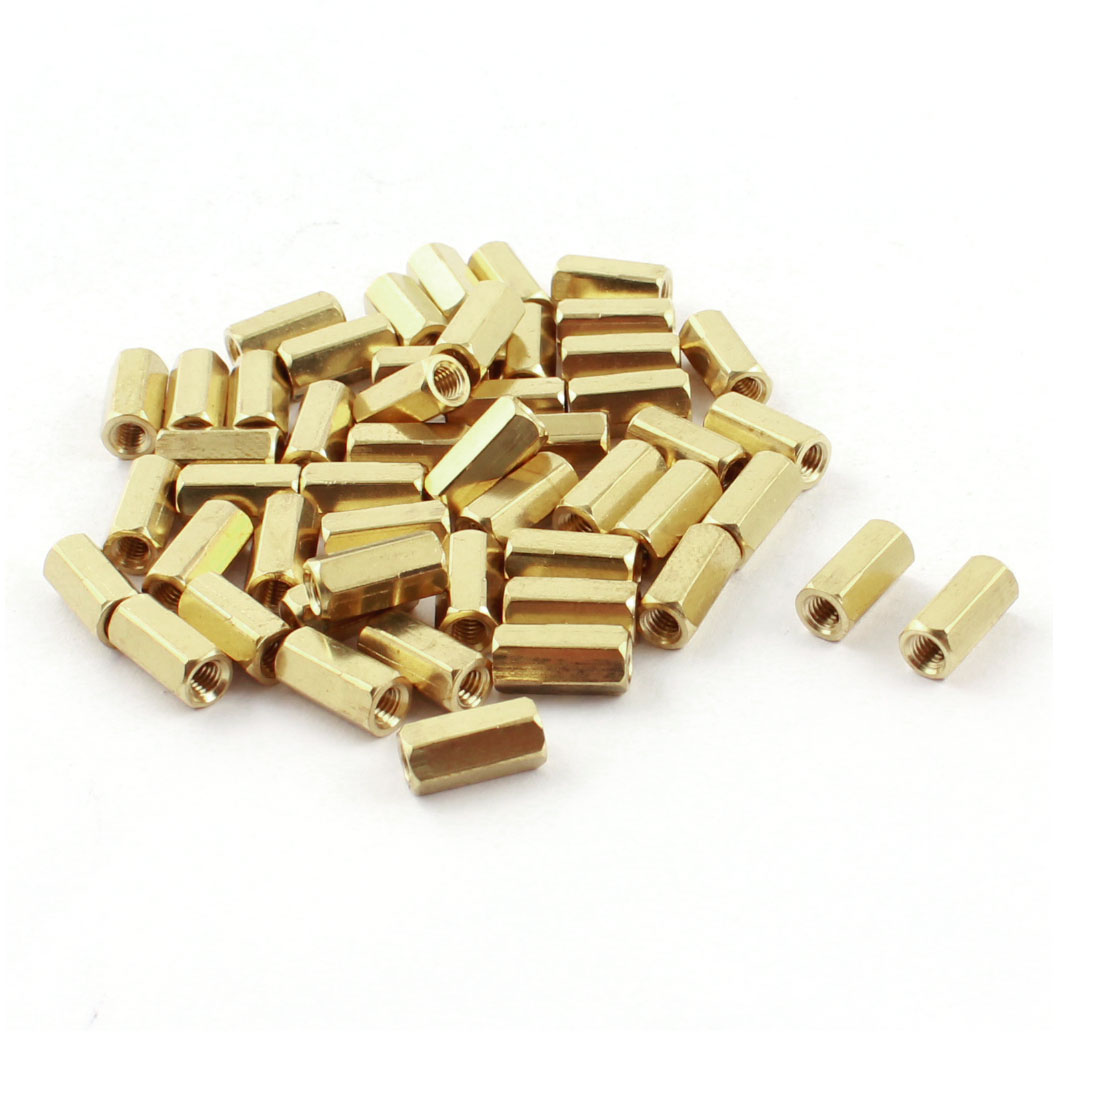 10mm Length M3 Female Thread Dual Ends Gold Tone Brass Pillar Hexagonal PCB Standoff Spacer 50Pcs